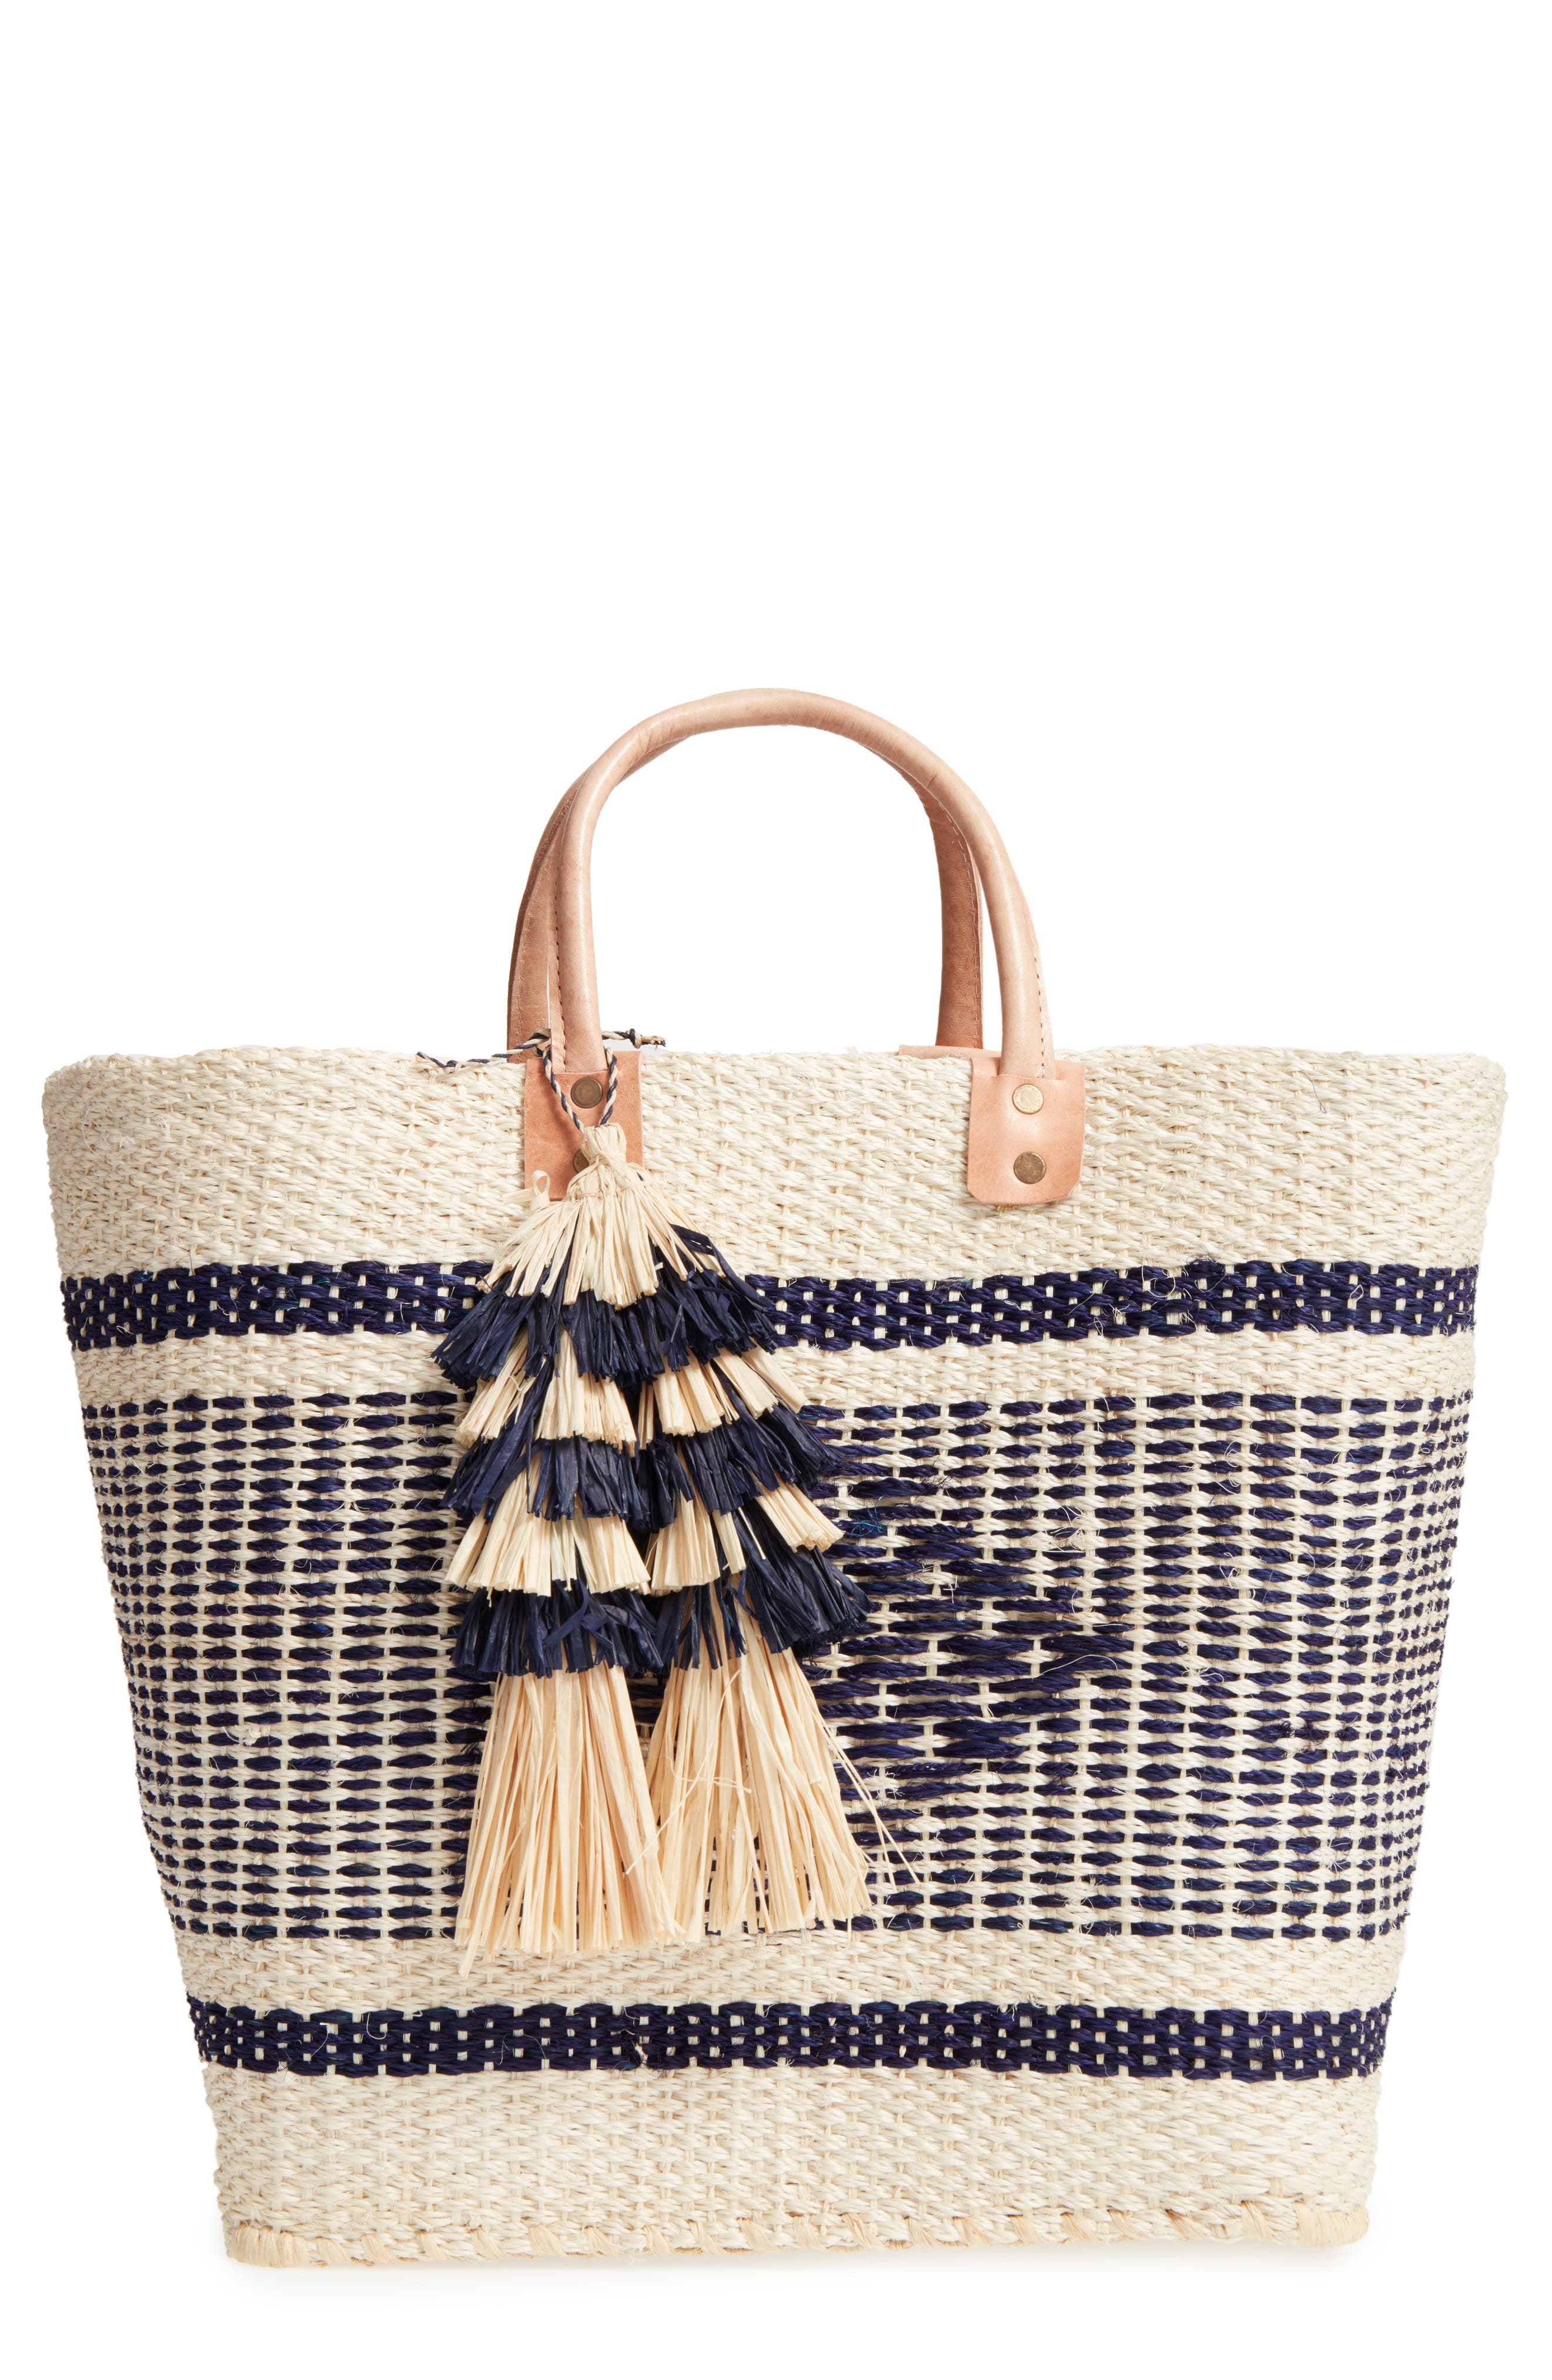 'Ibiza' Woven Tote with Tassel Charms,                             Main thumbnail 1, color,                             200